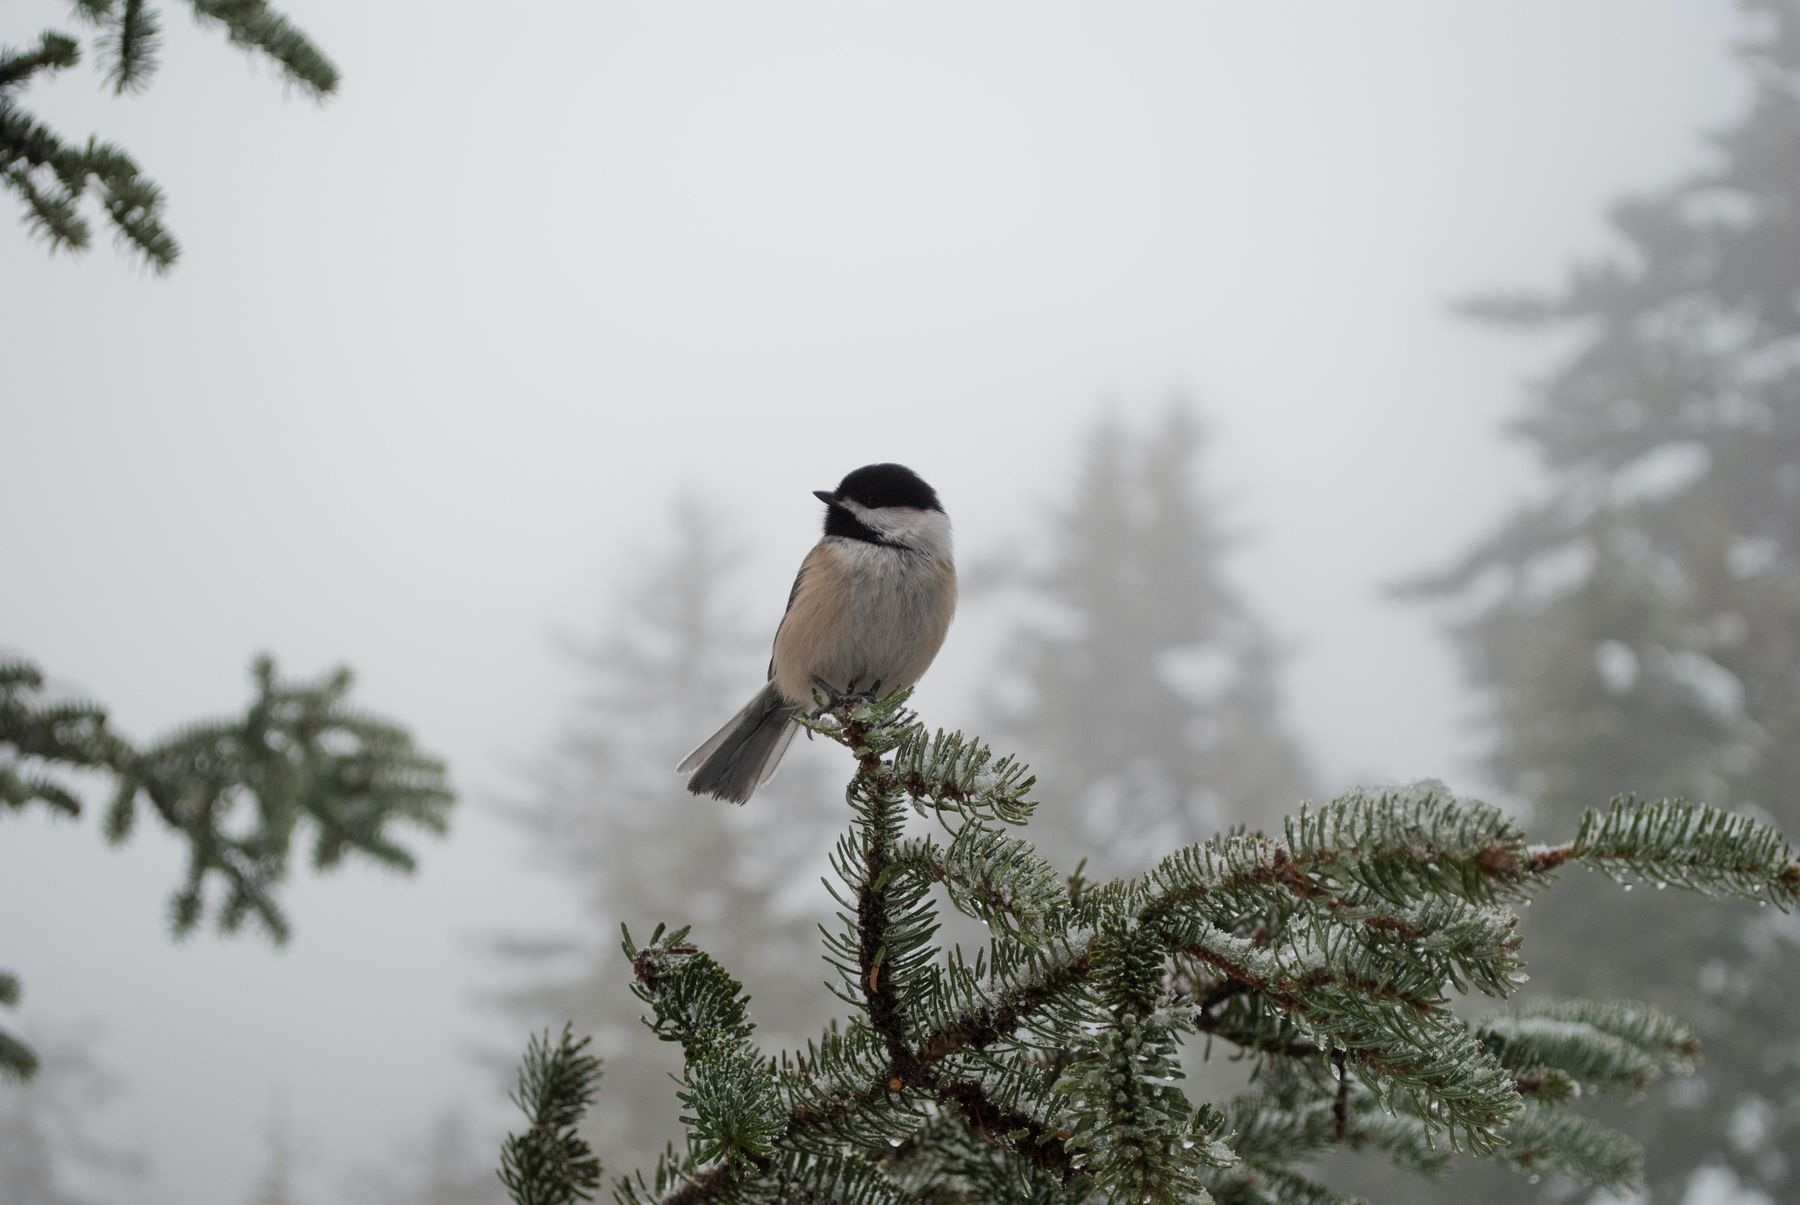 bird perched on a tree in the snow in Sutton, Quebec, one of the best hikes near Montreal